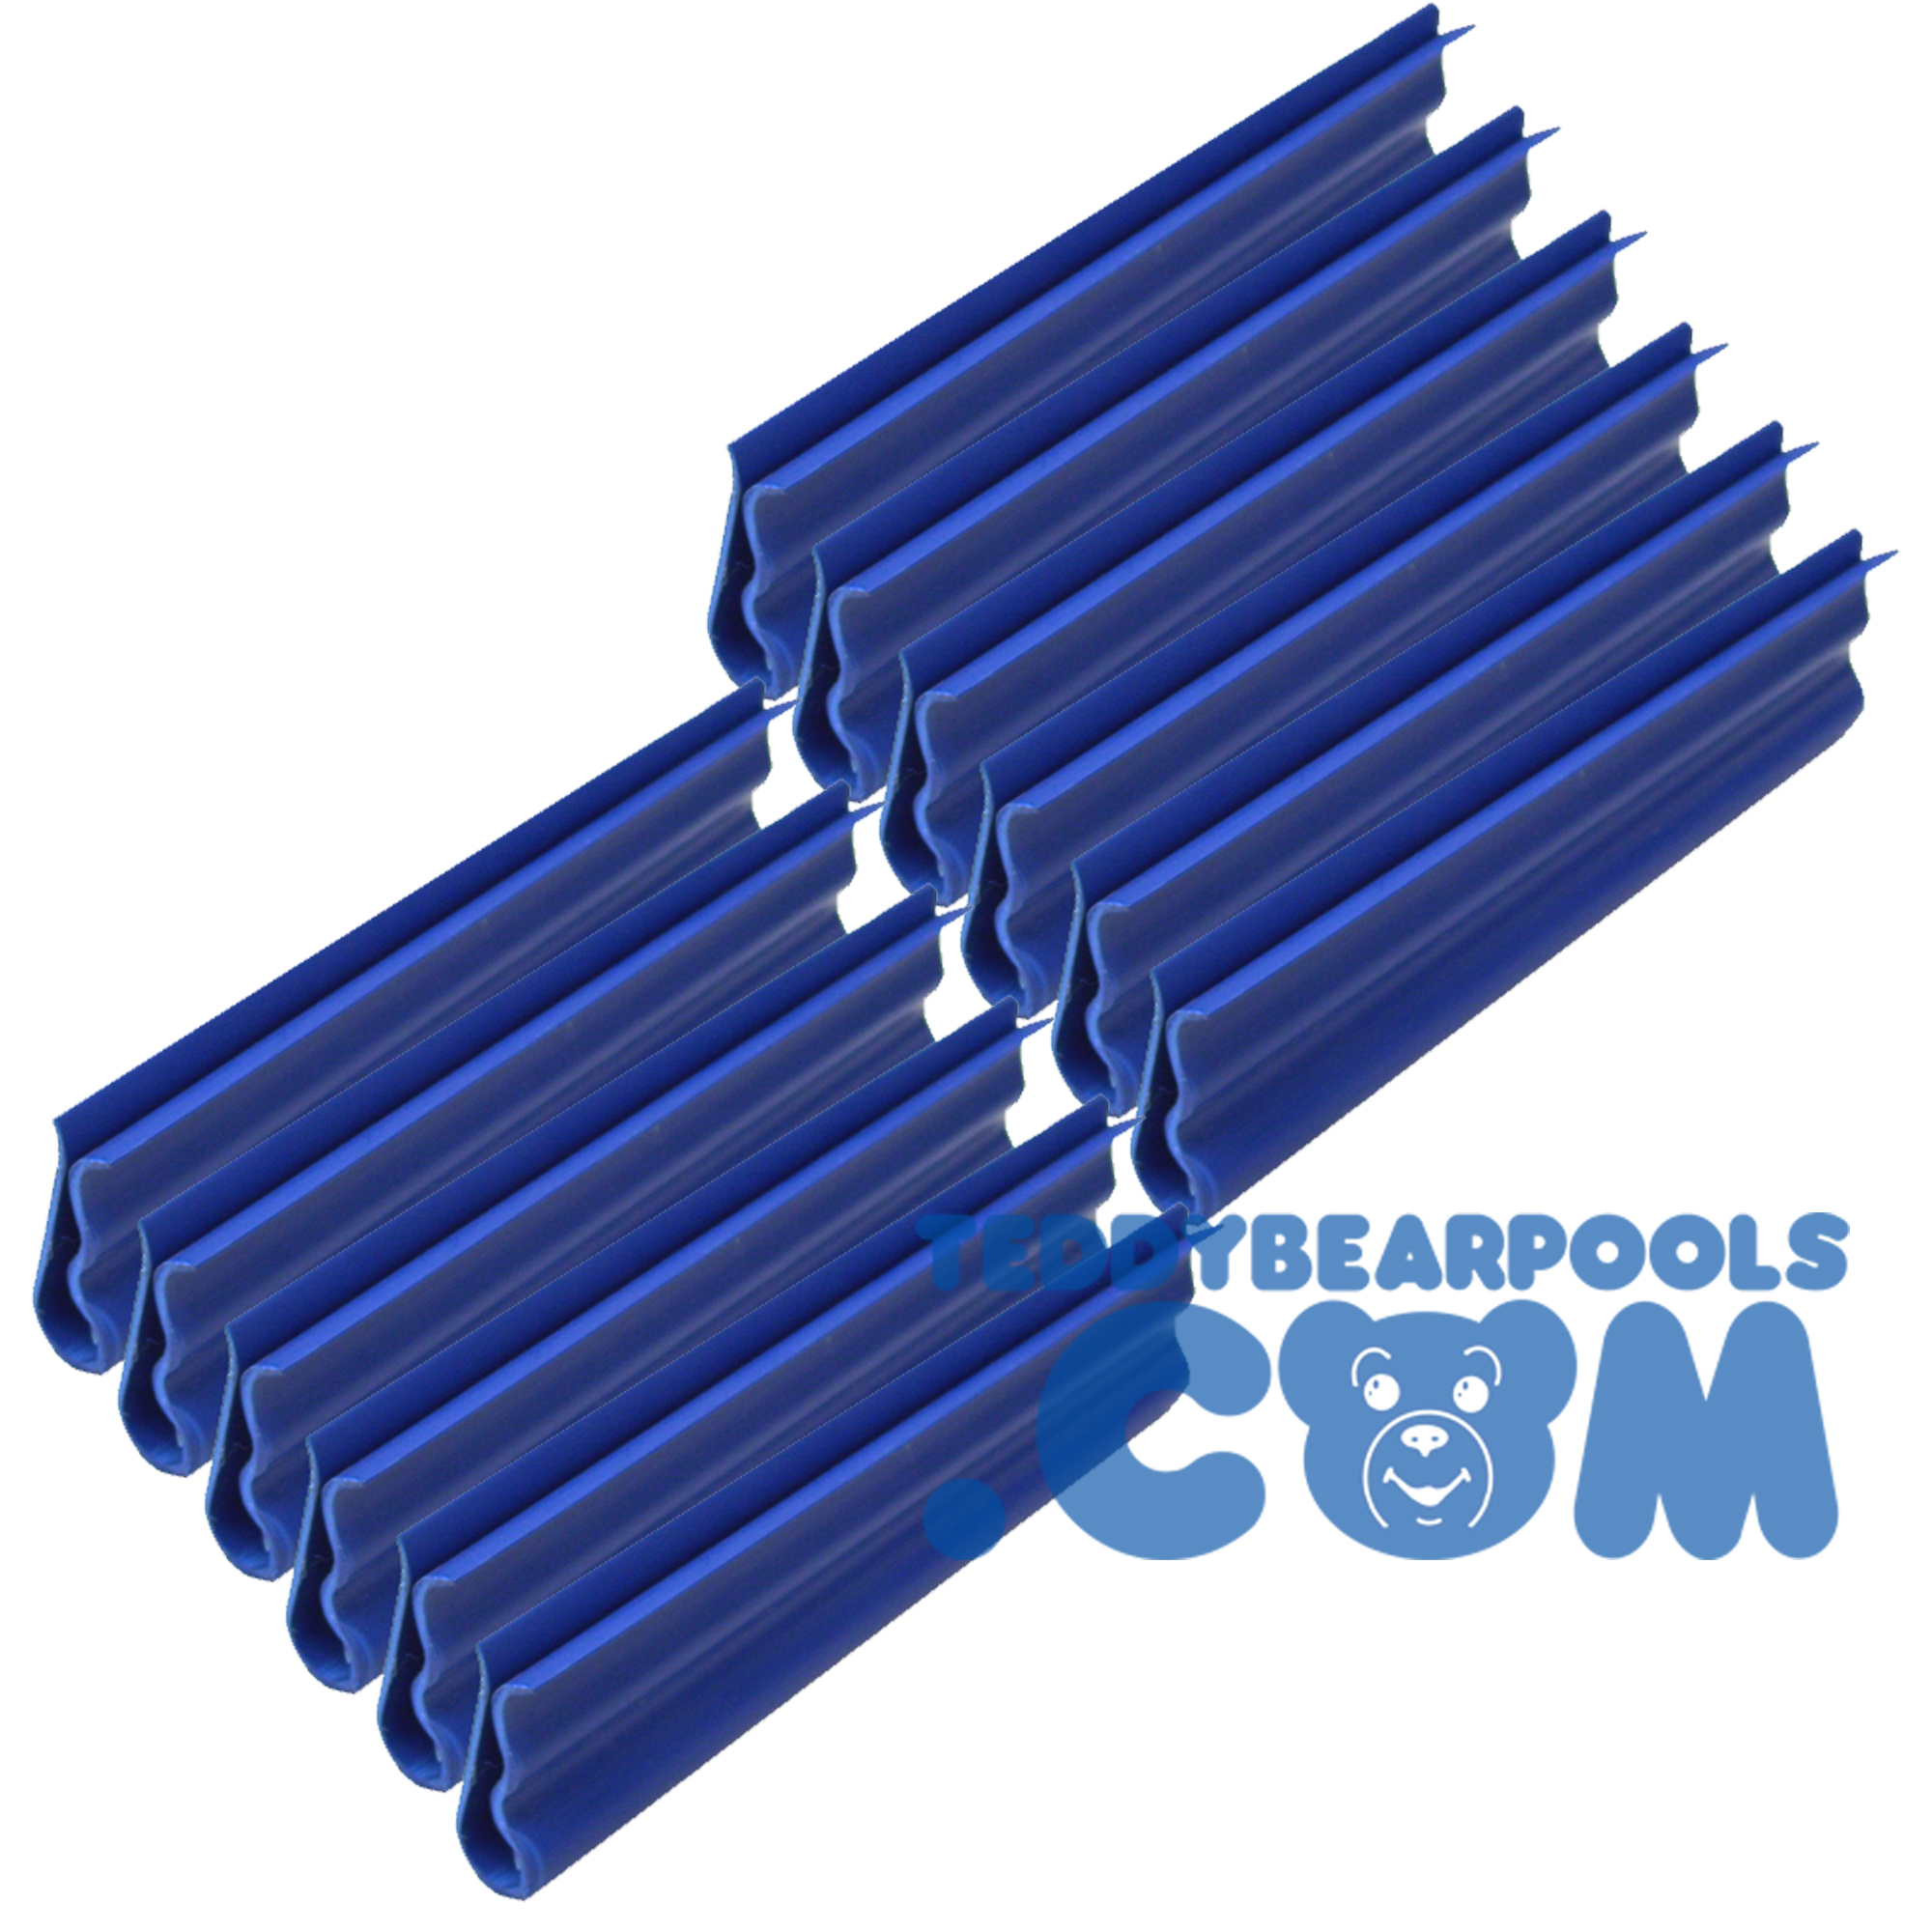 Teddy bear cover clips for above ground pool cover 12 pack teddy bear pools and spas for Swimming pool winter cover clips